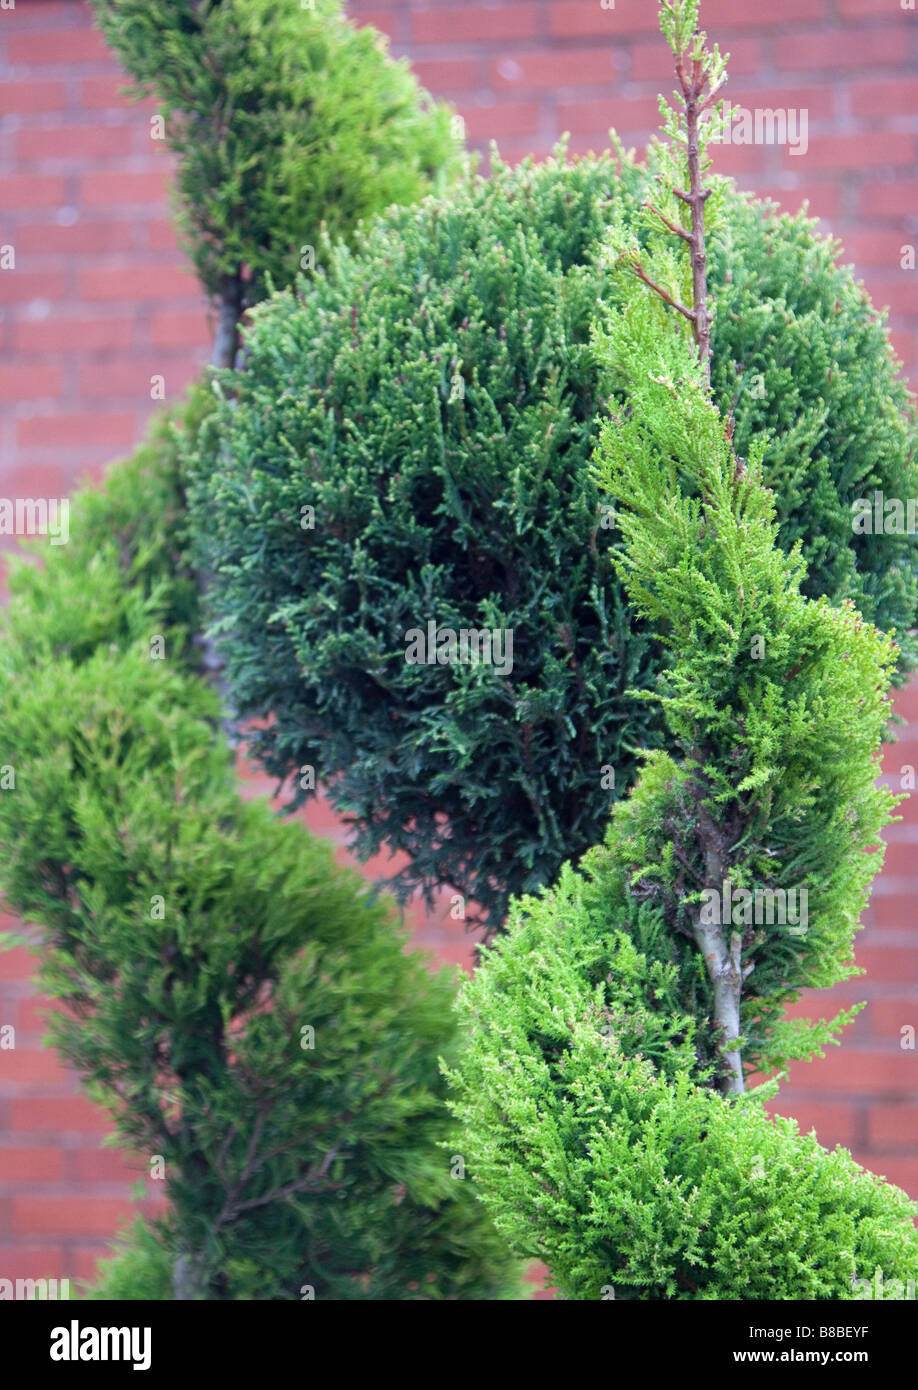 Two Topiary ornamental trees trained into a spiral shape and a cupressus ball - Stock Image